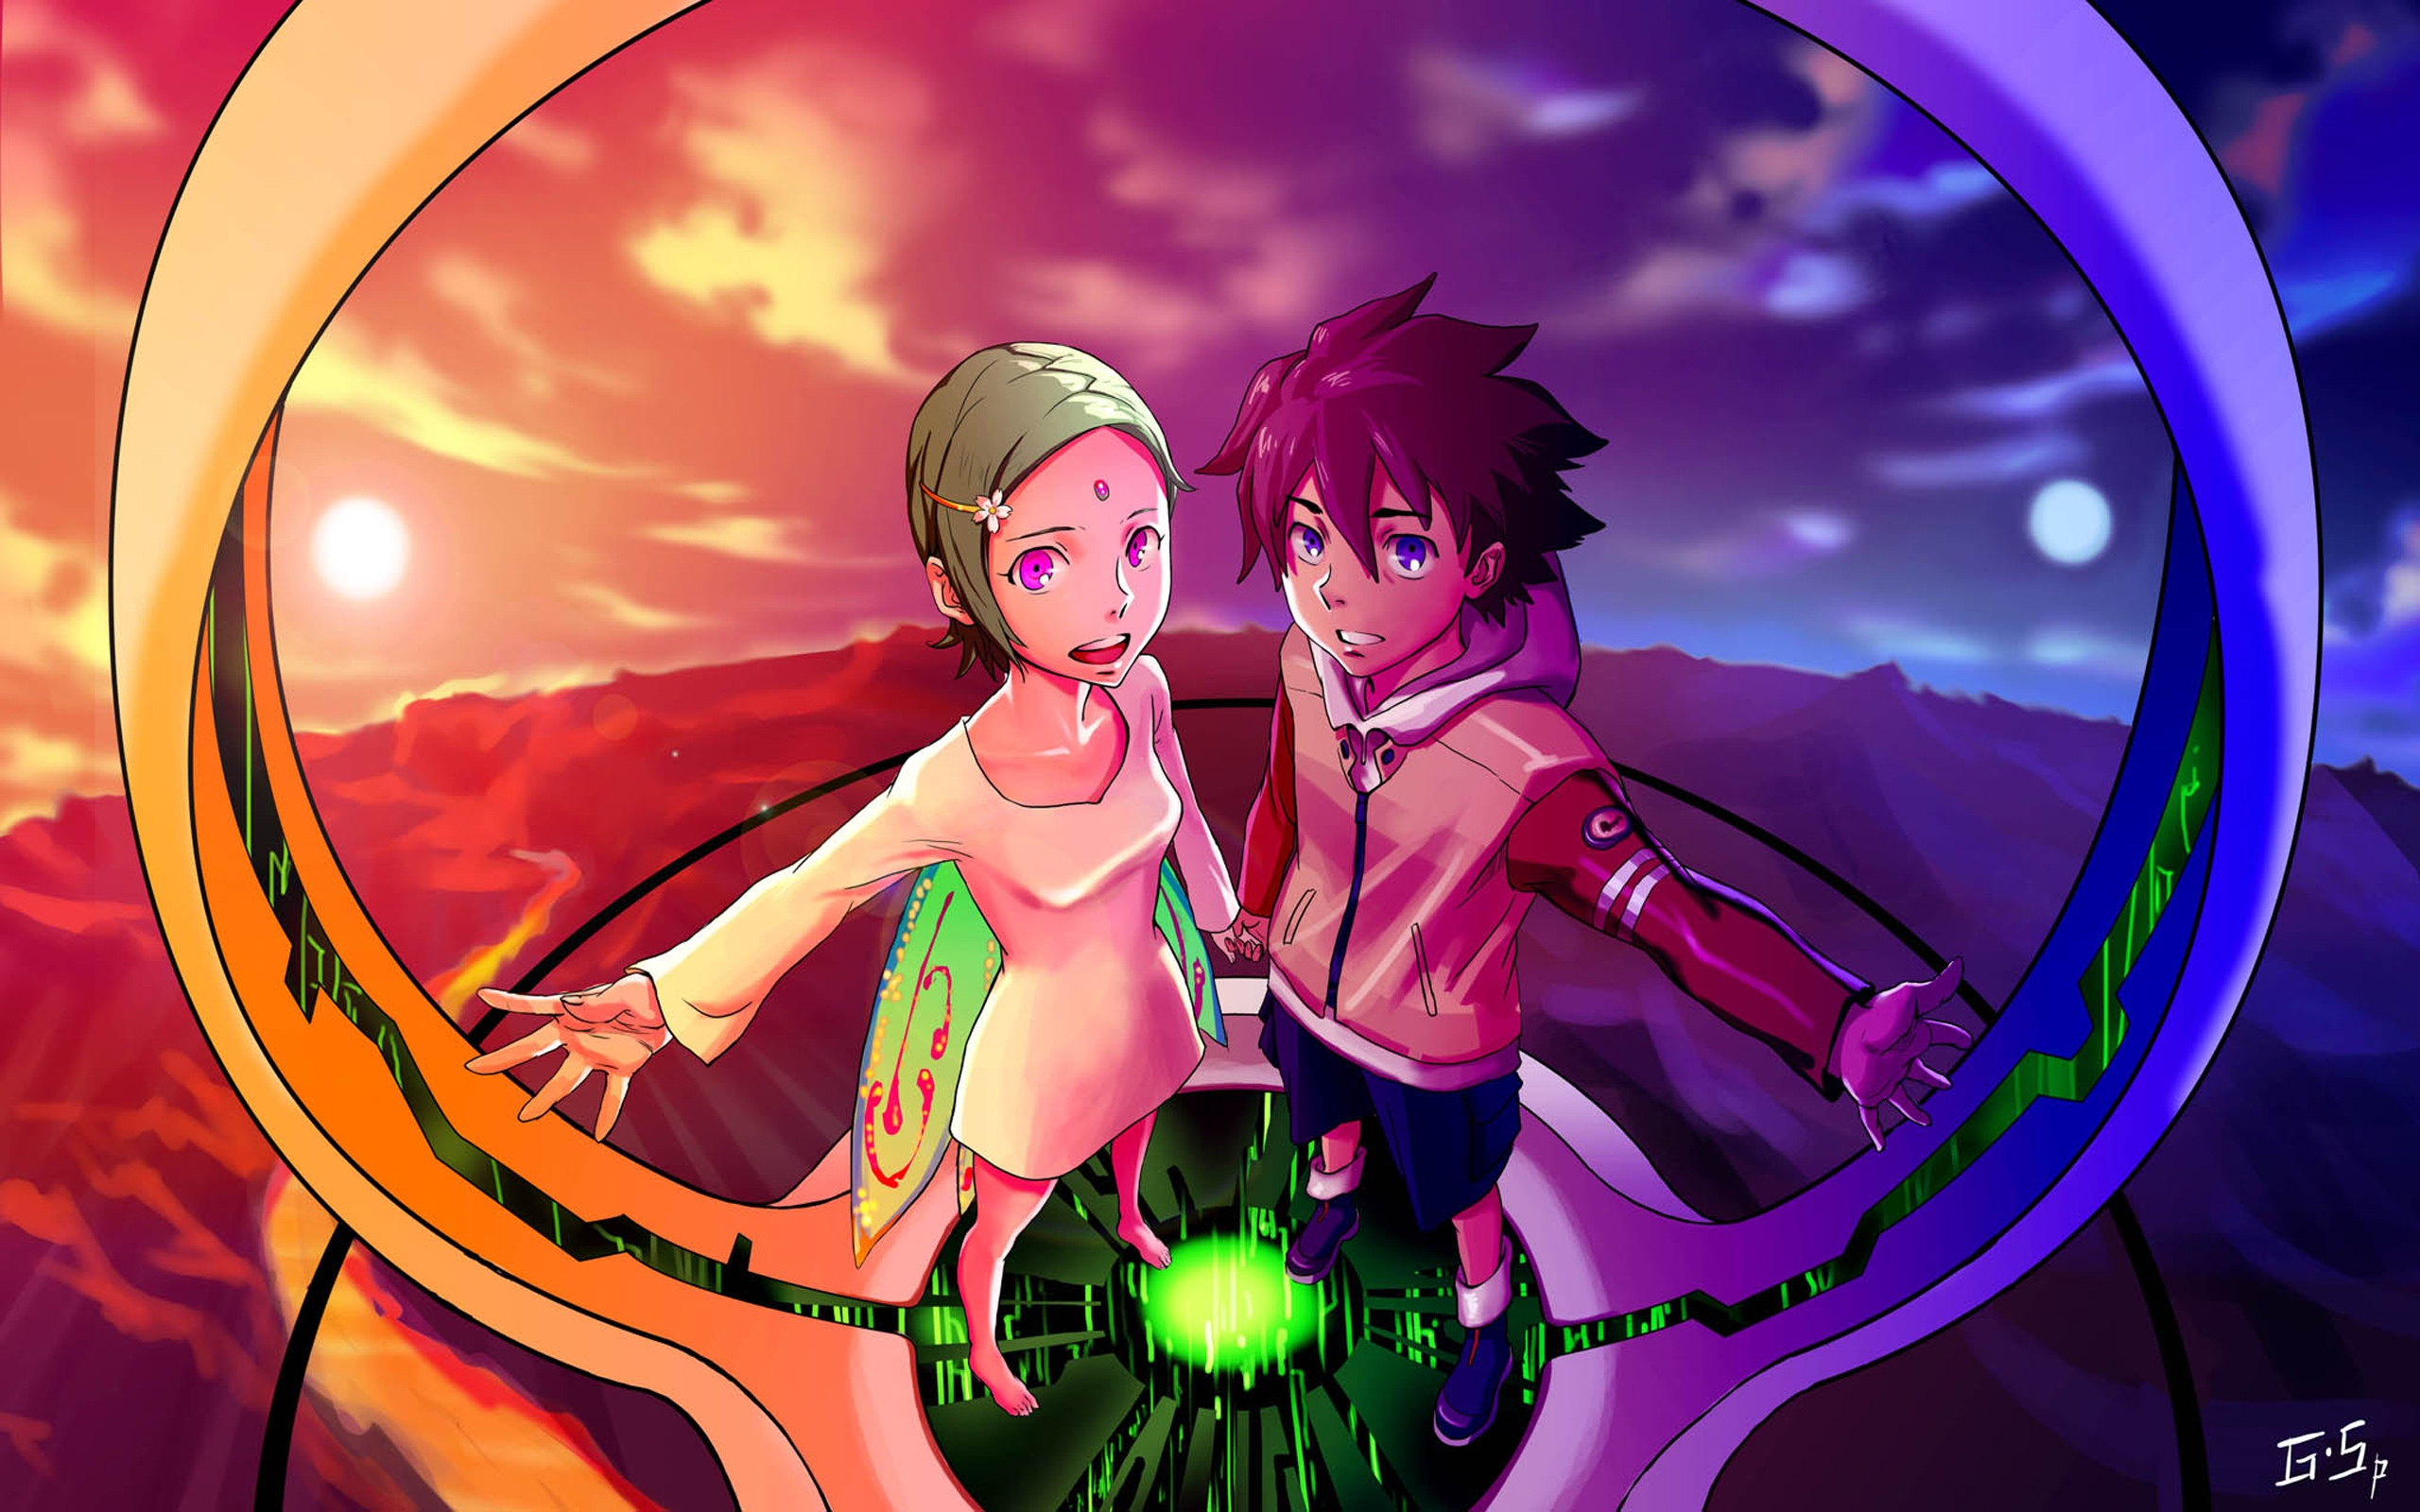 Anime Boy And Girl Wallpapers - Wallpaper Cave